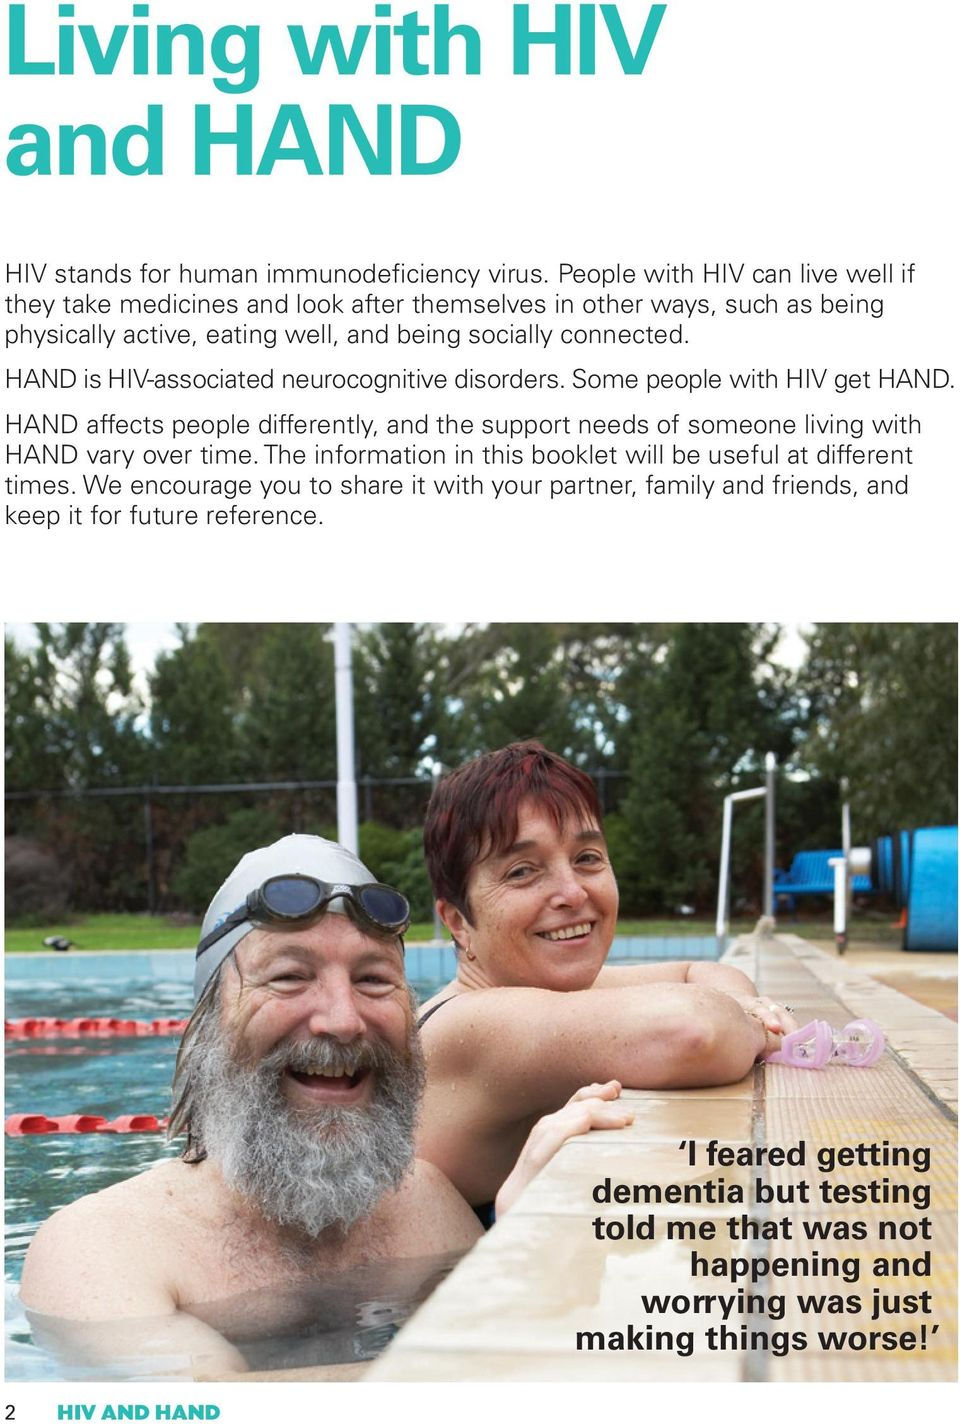 HAND is HIV-associated neurocognitive disorders. Some people with HIV get HAND. HAND affects people differently, and the support needs of someone living with HAND vary over time.